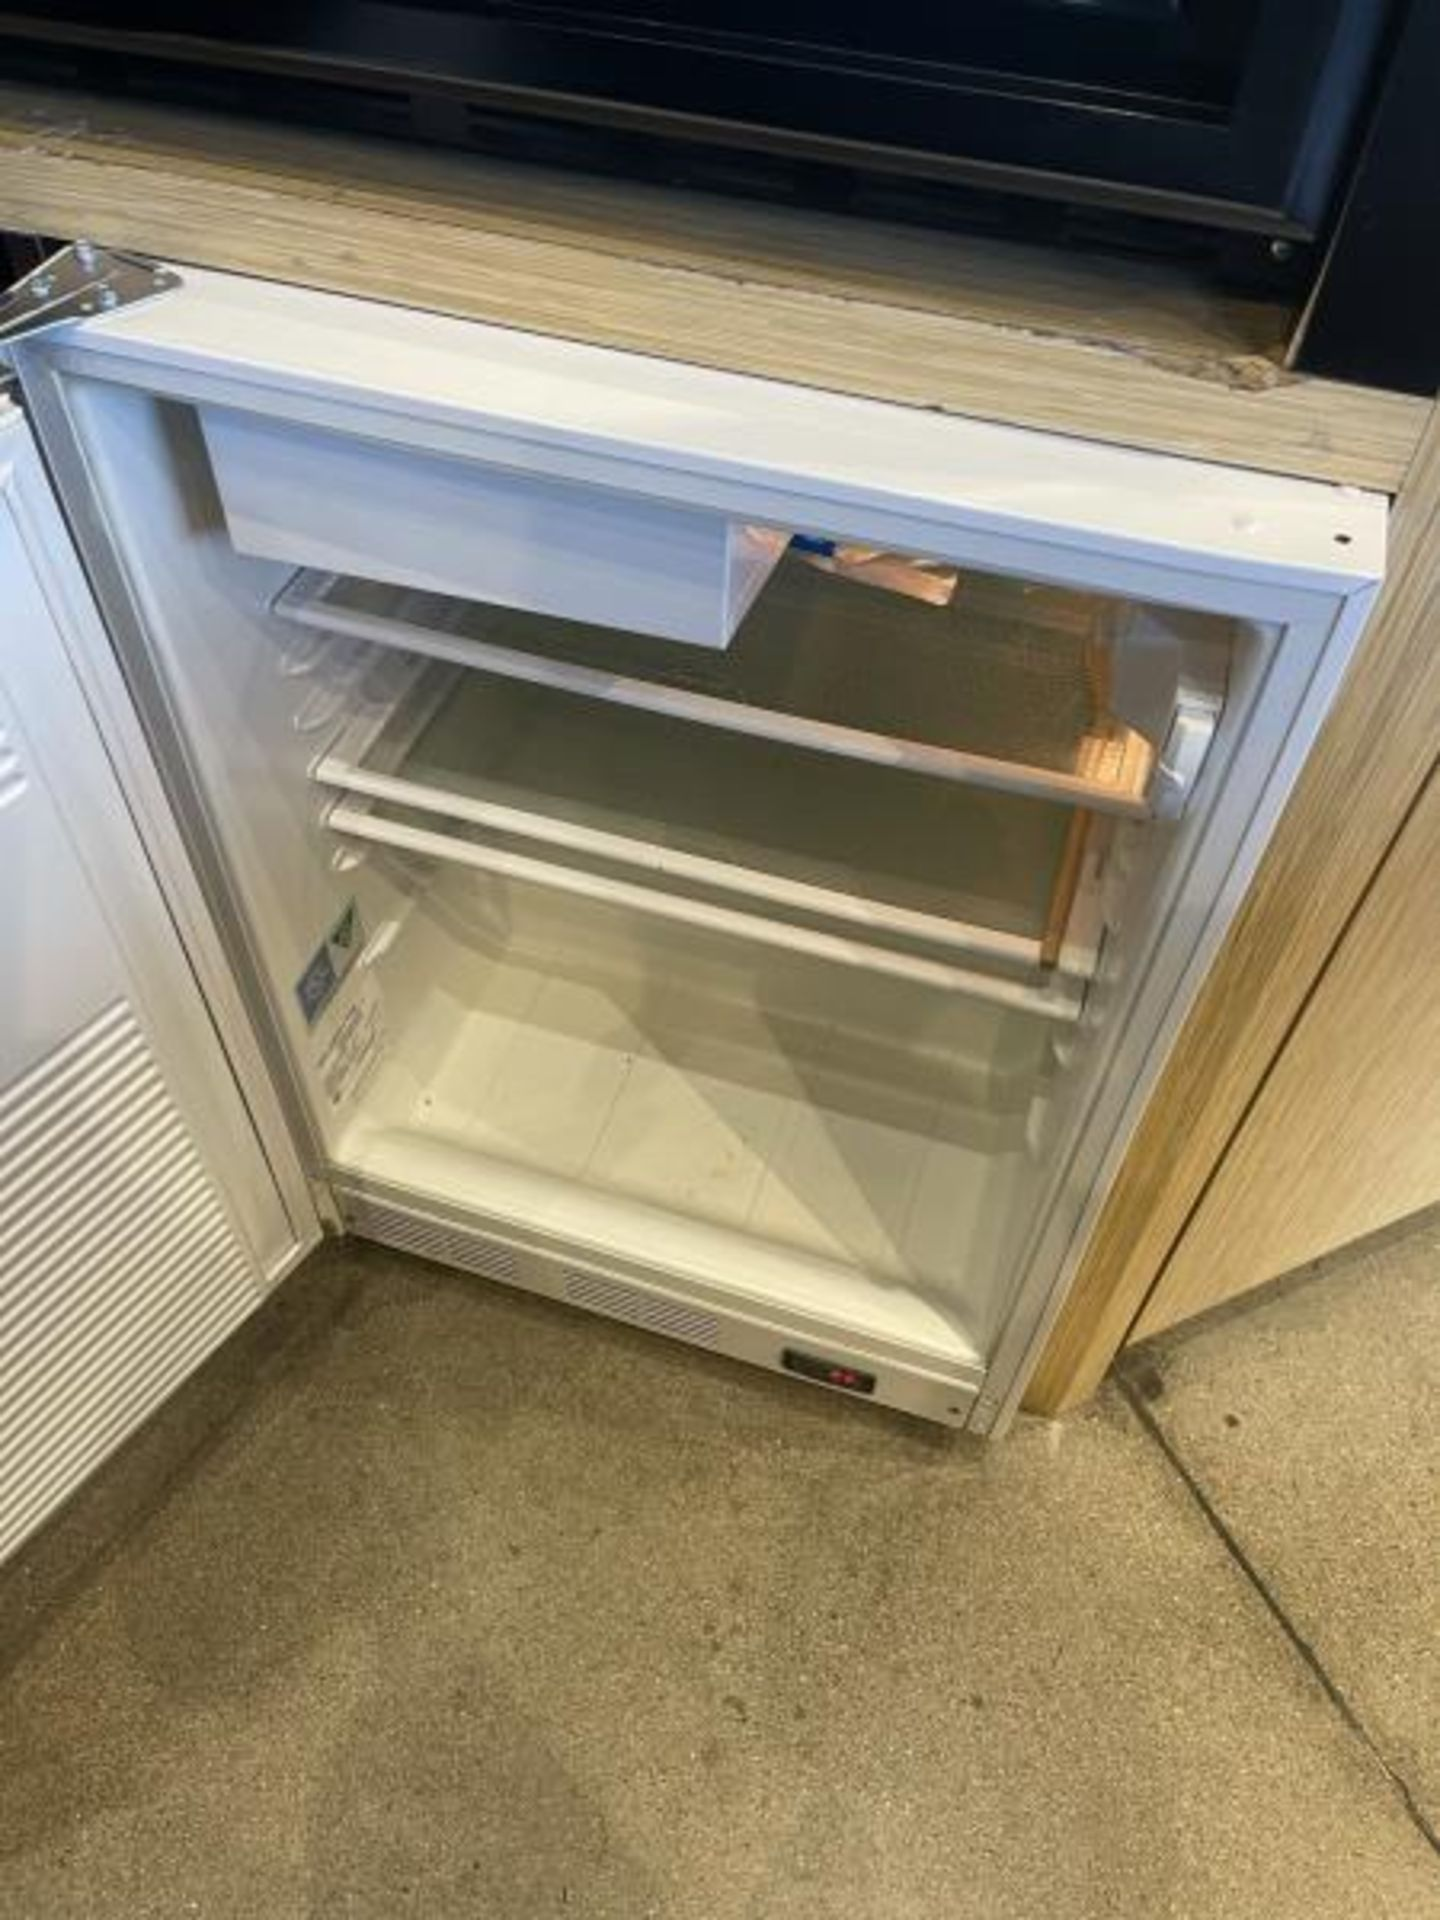 Undercounter Summit Commercial Freezer M: SCFSS-SSTB-LH - Image 2 of 6